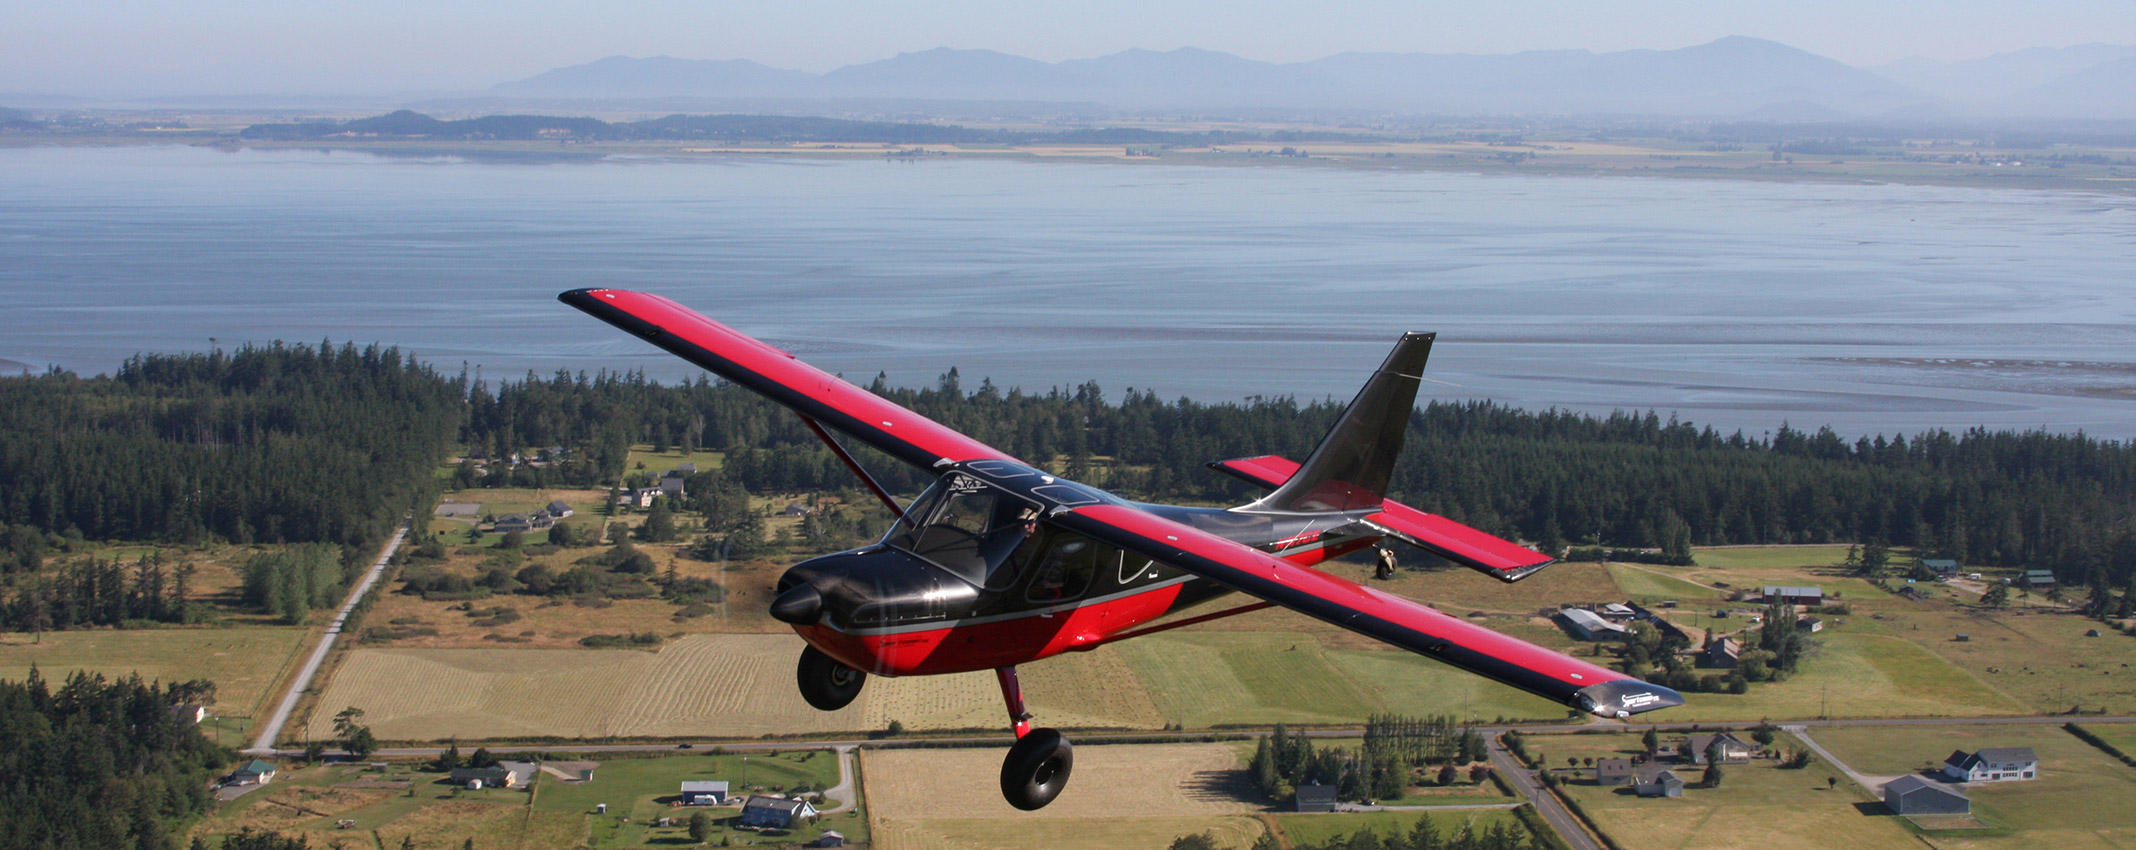 Sportsman Specifications and Performance - Glasair Aircraft